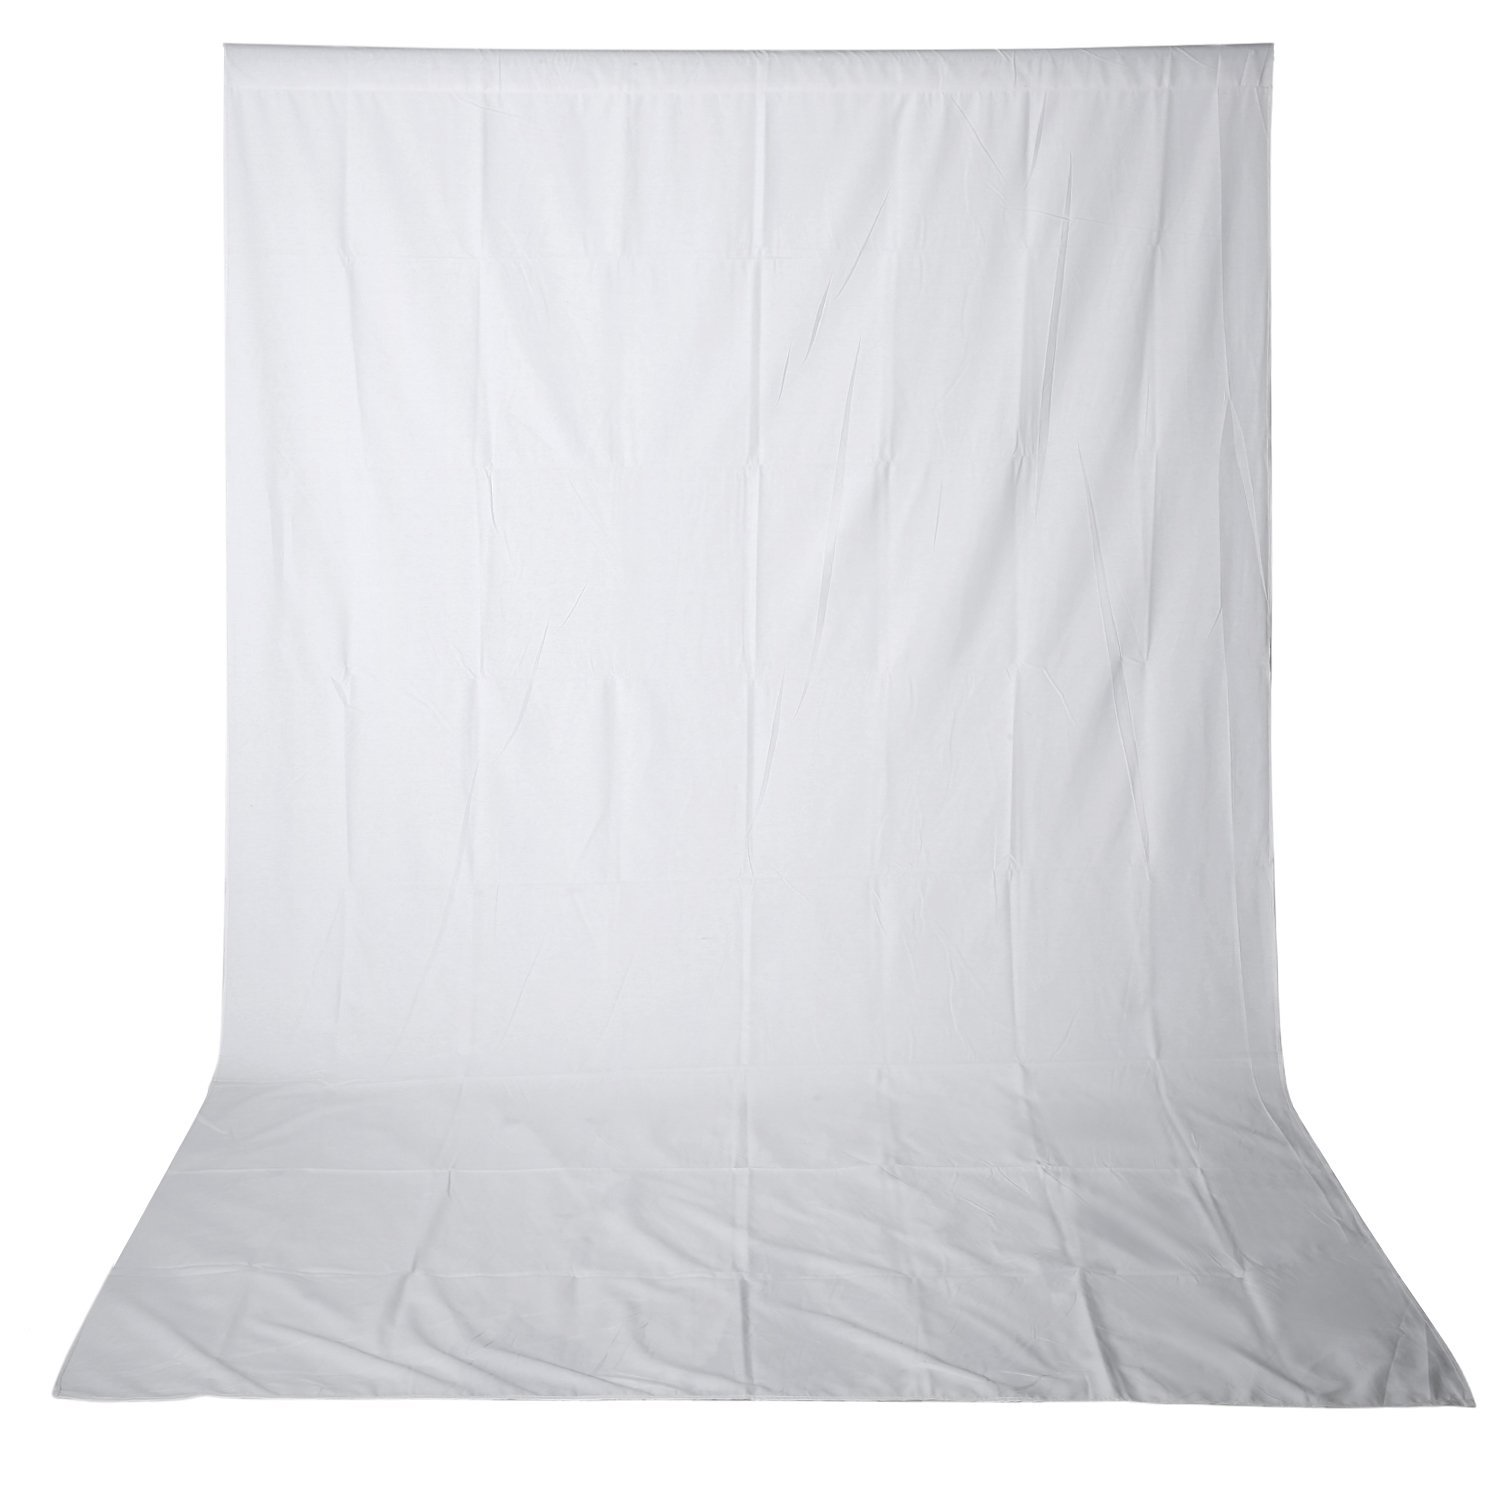 Neewer 10 x 12FT / 3 x 3.6M PRO Photo Studio 100% Pure Muslin Collapsible Backdrop Background for Photography,Video and Television (Background ONLY) - WHITE